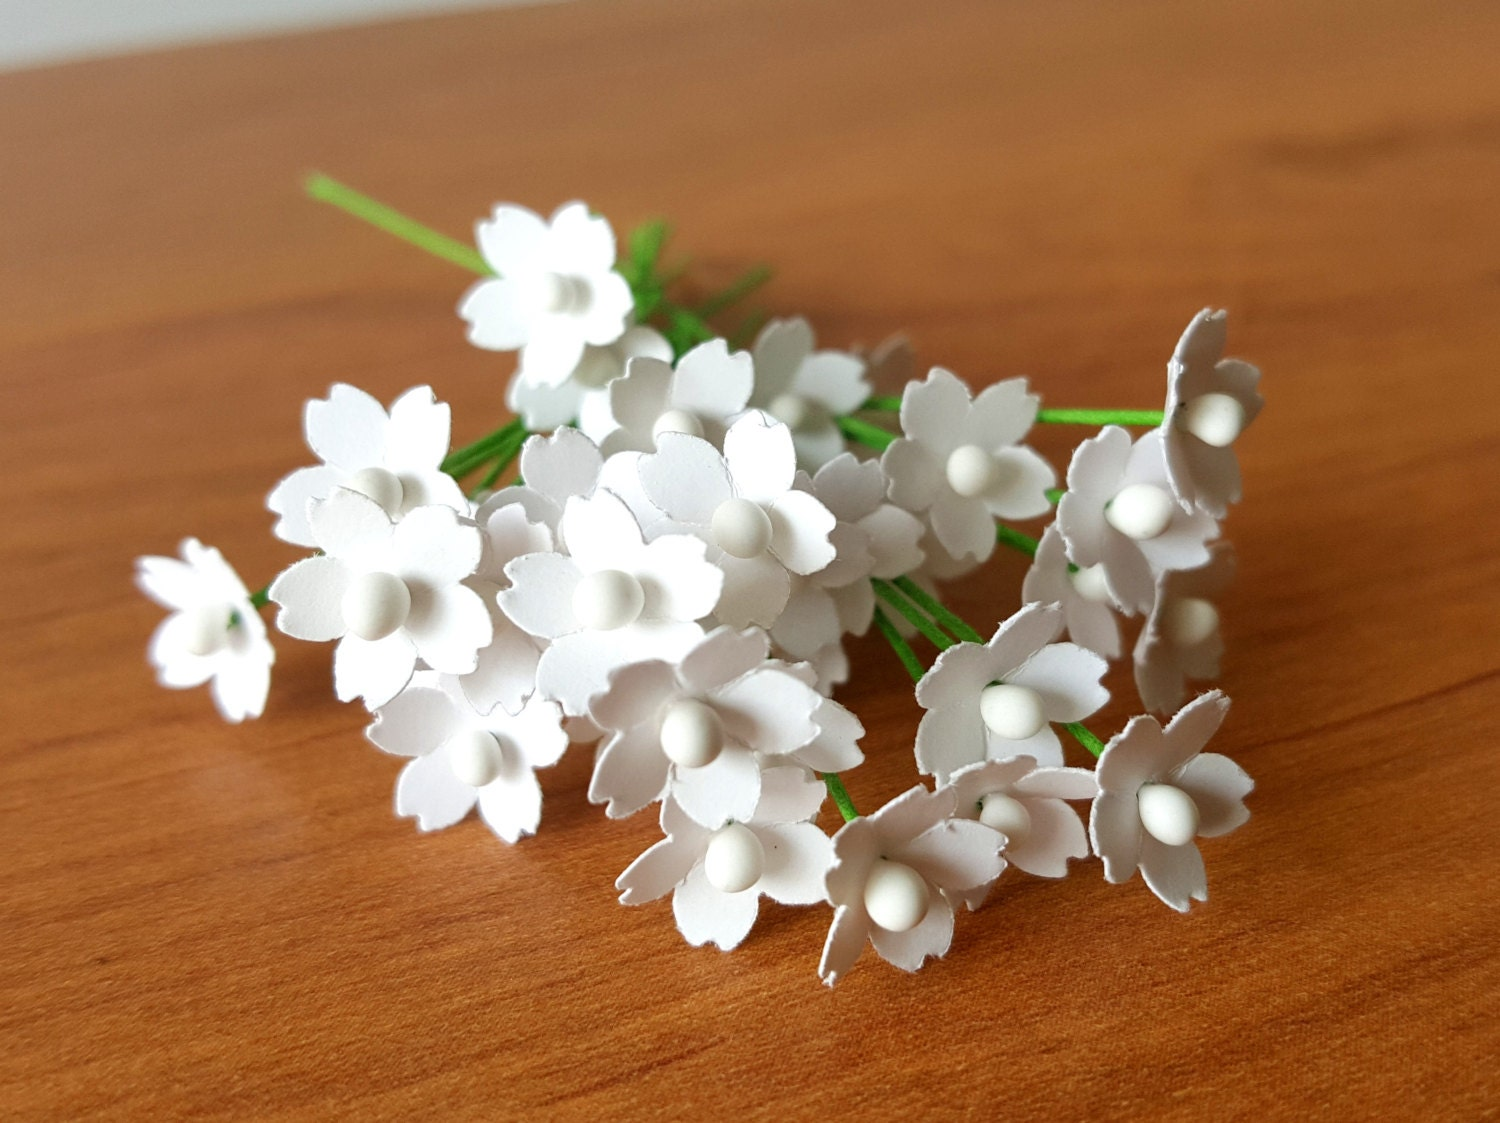 100 Miniature White Paper Flowers 5mm White Flowers Etsy